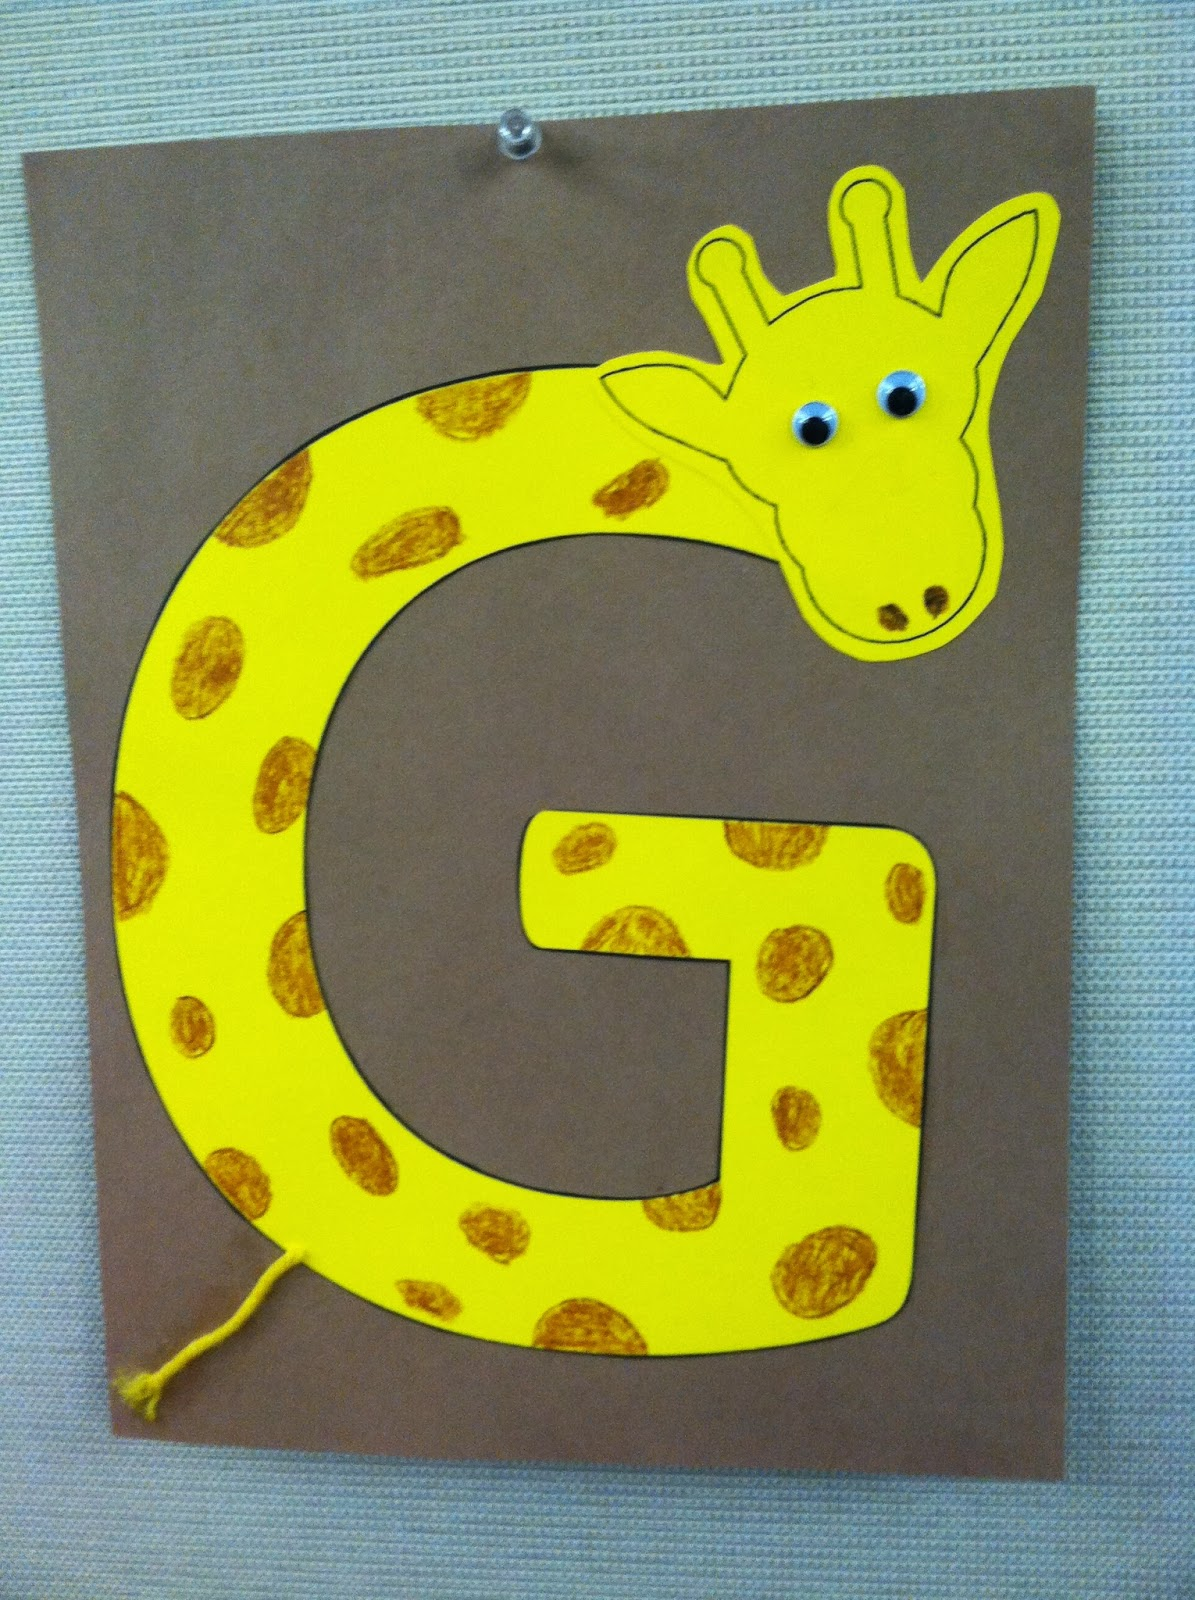 The lion is a bookworm storytime giraffes for Arts and crafts templates